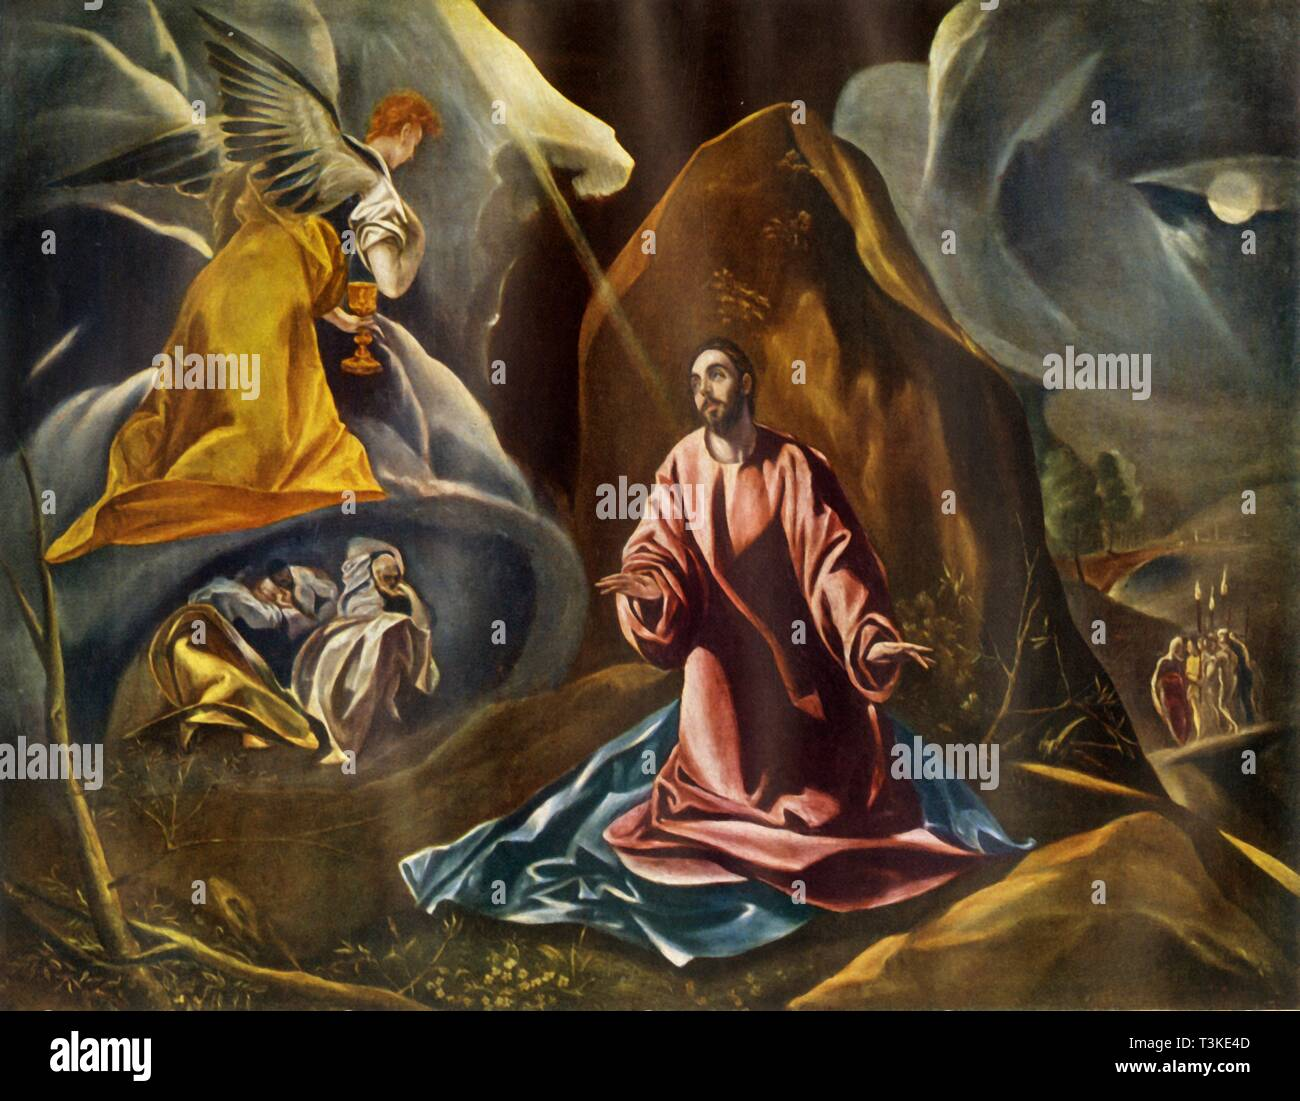 """'The Agony in the Garden of Gethsemane', 1590s, (1946). An angel appears to the kneeling Christ. In the background are the sleeping apostles, while on the right, Judas approaches with soldiers. Painting in the National Gallery in London. From """"Spanish Painting"""" by Philip Hendy. [Avalon Press & Central Institute of Art and Design, London, 1946] - Stock Image"""